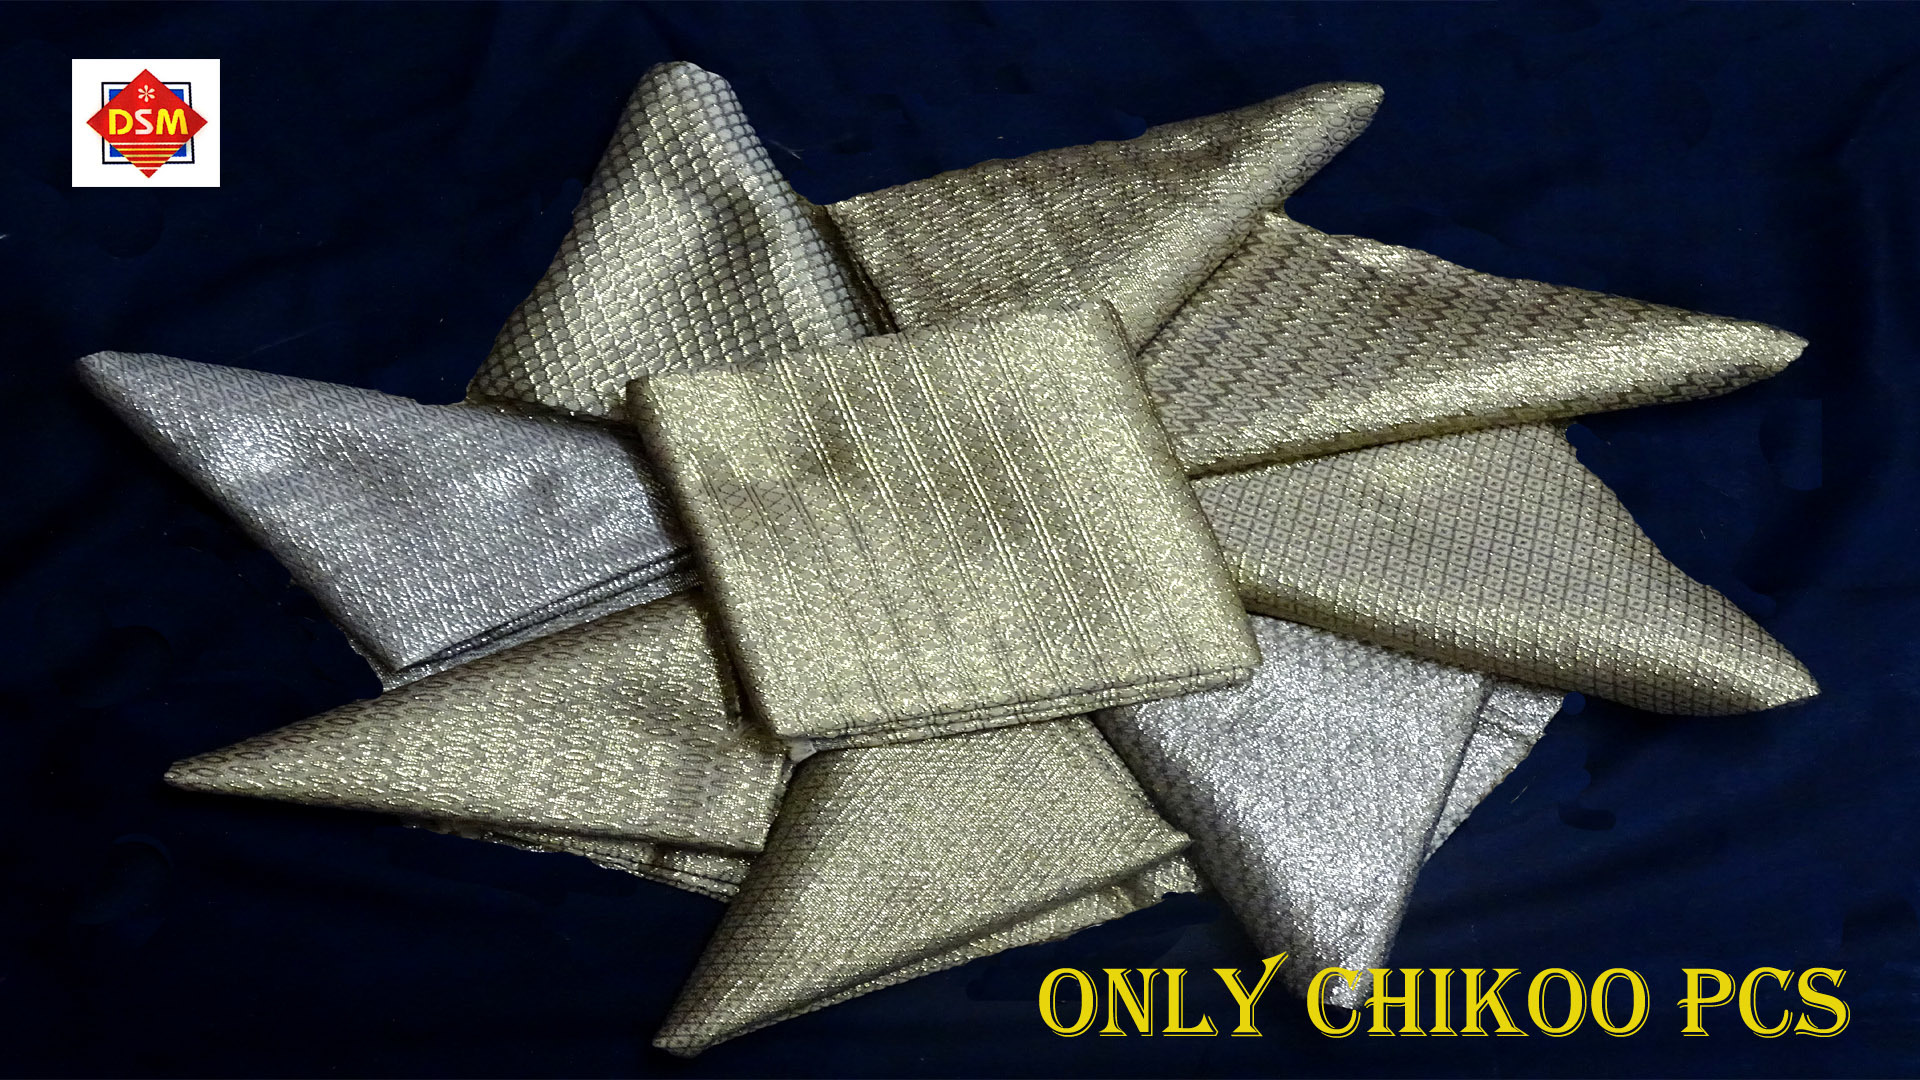 ONLY CHIKOO PCS